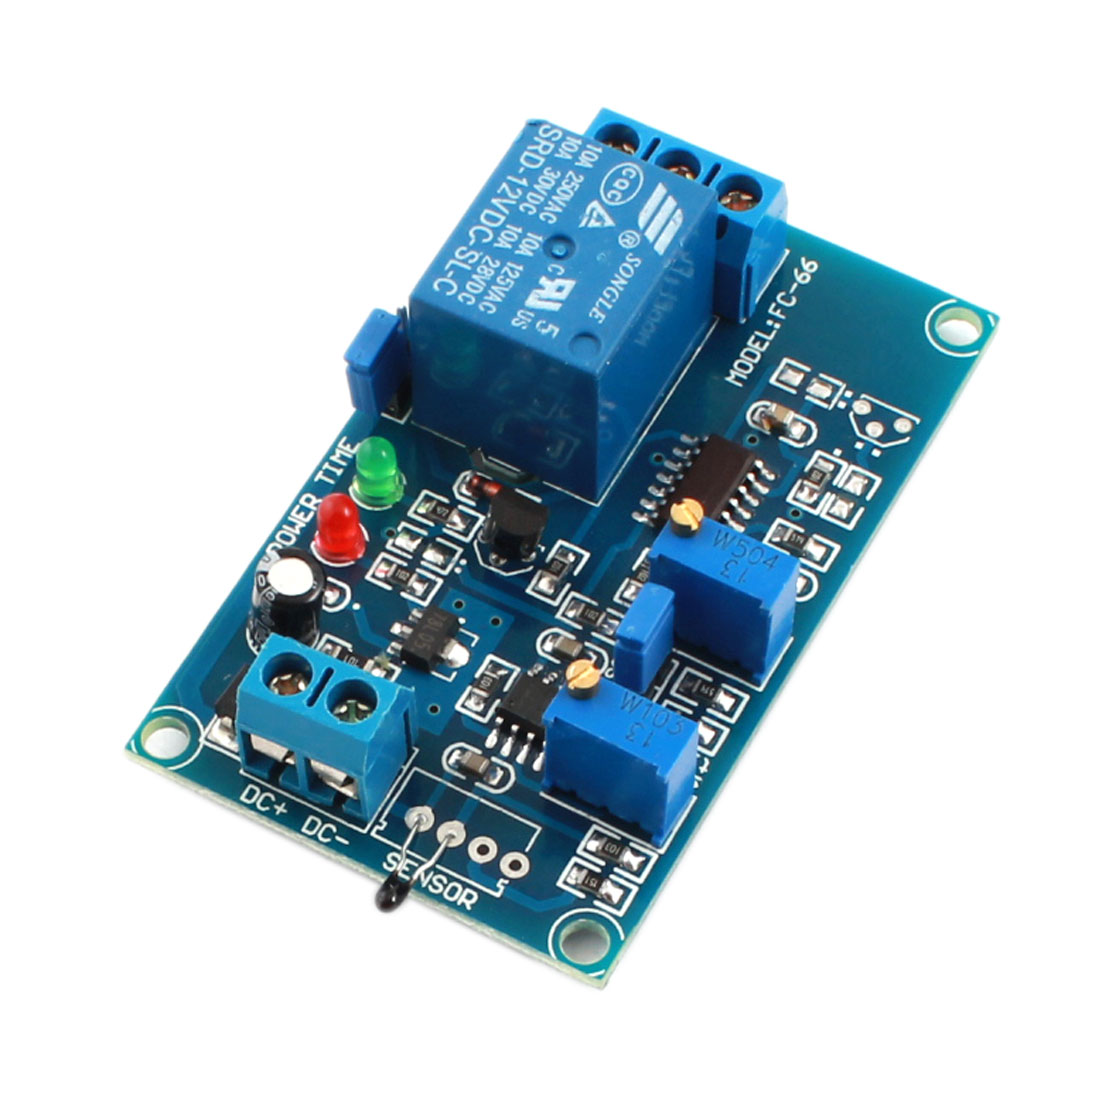 DC12V 2-LED Lamp 1 Way High Temperature Trigger Thermosensitive Time Delay PCB Board Relay Module Blue